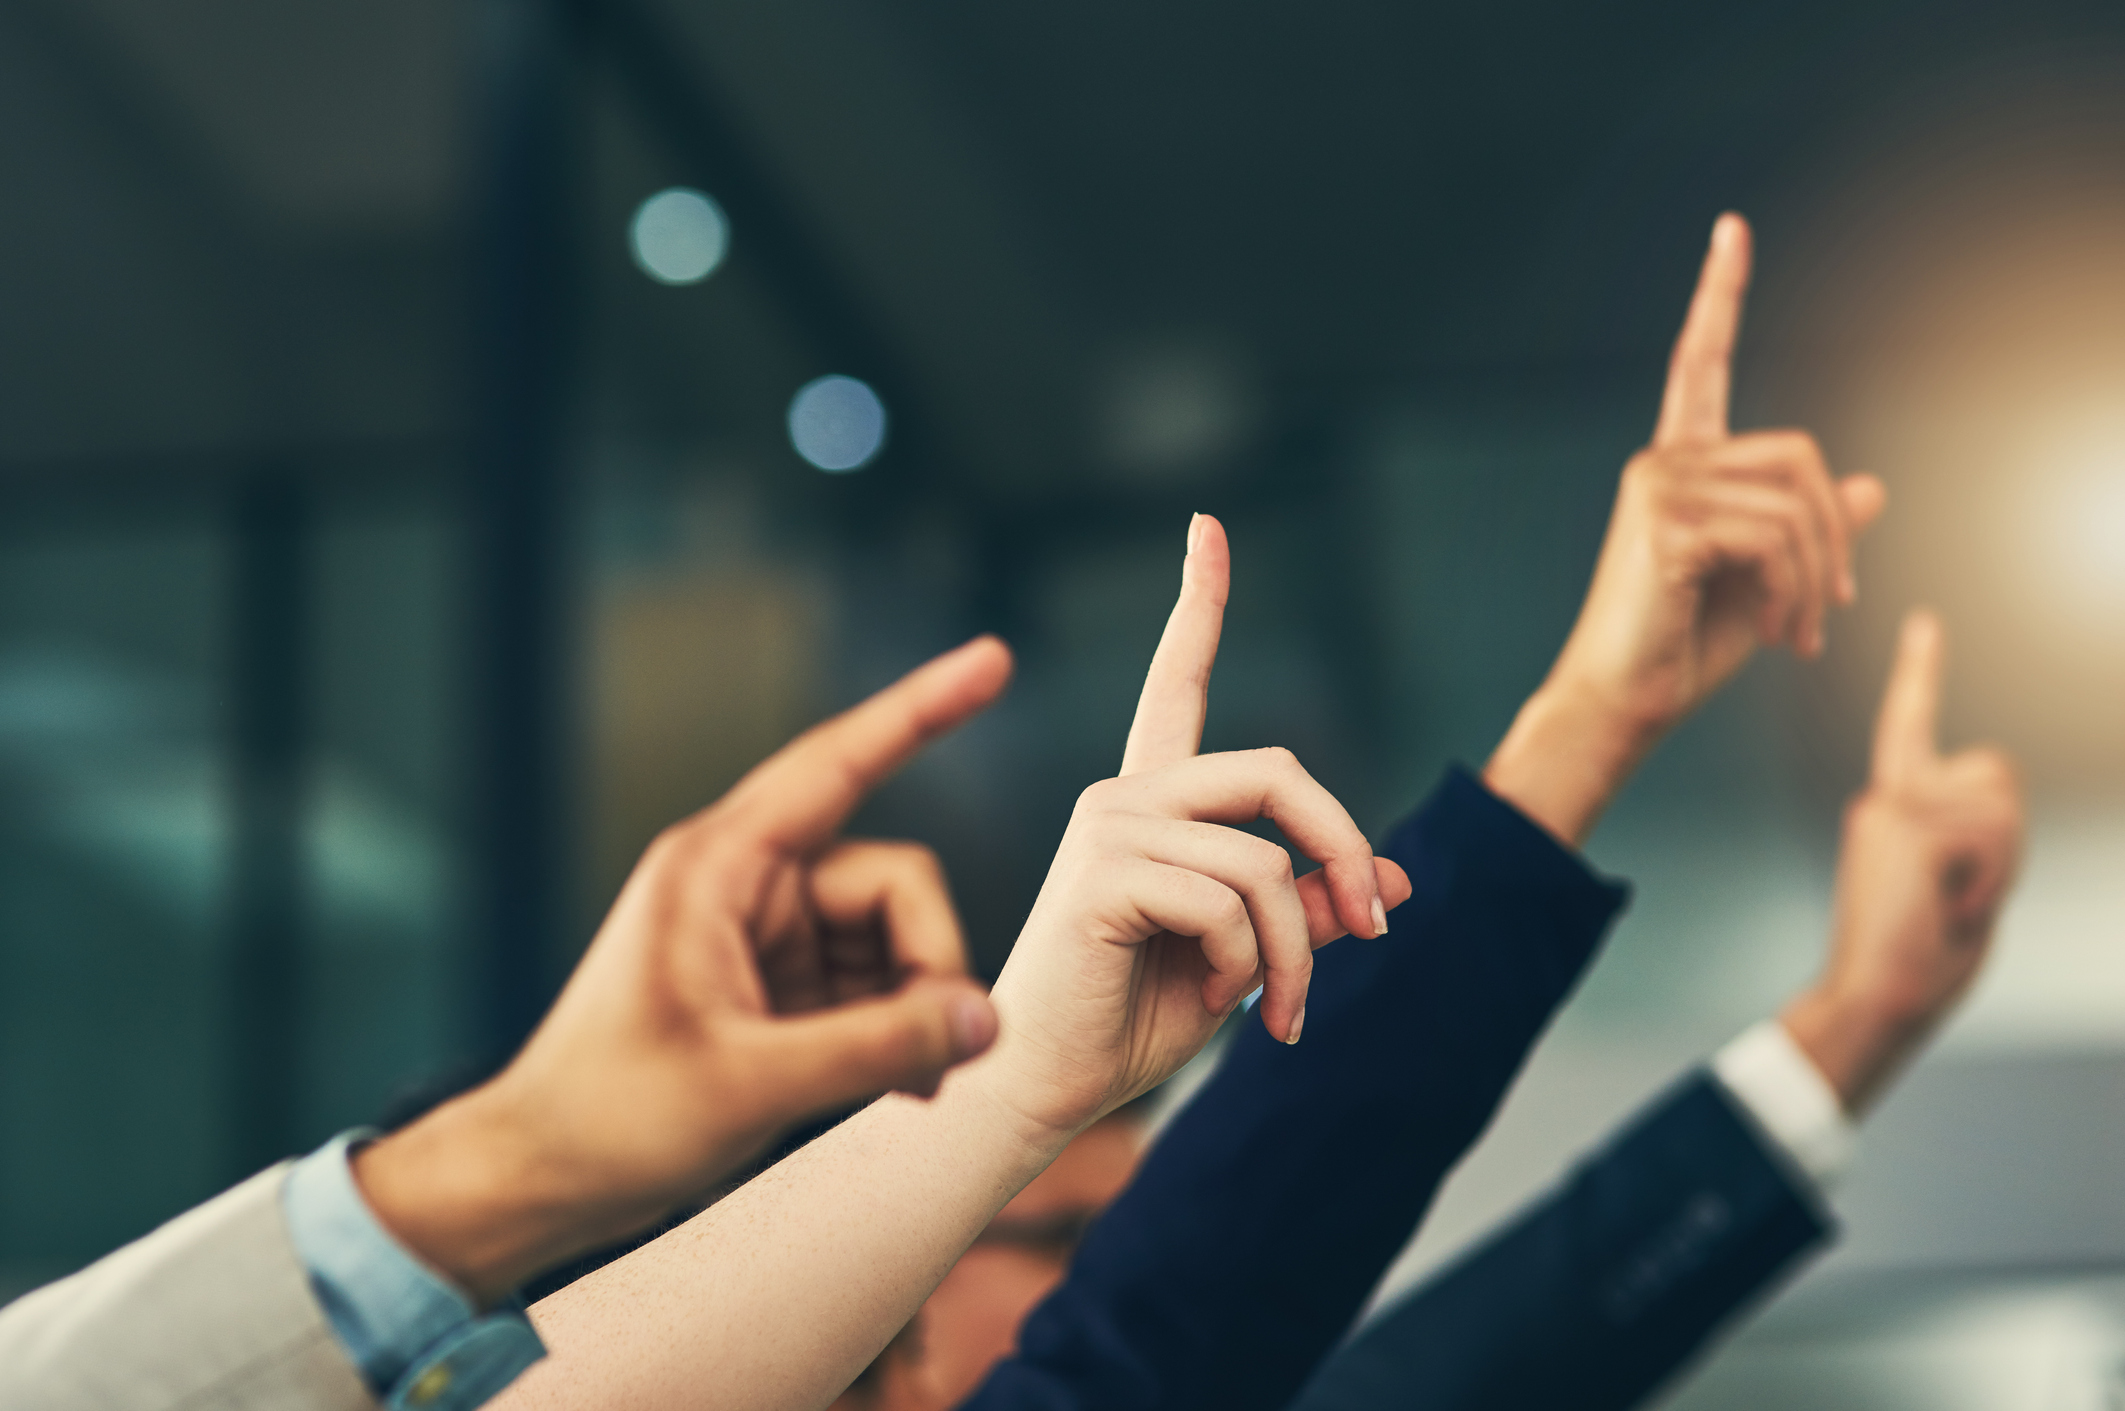 Cropped shot of a group of businesspeople raising their hands